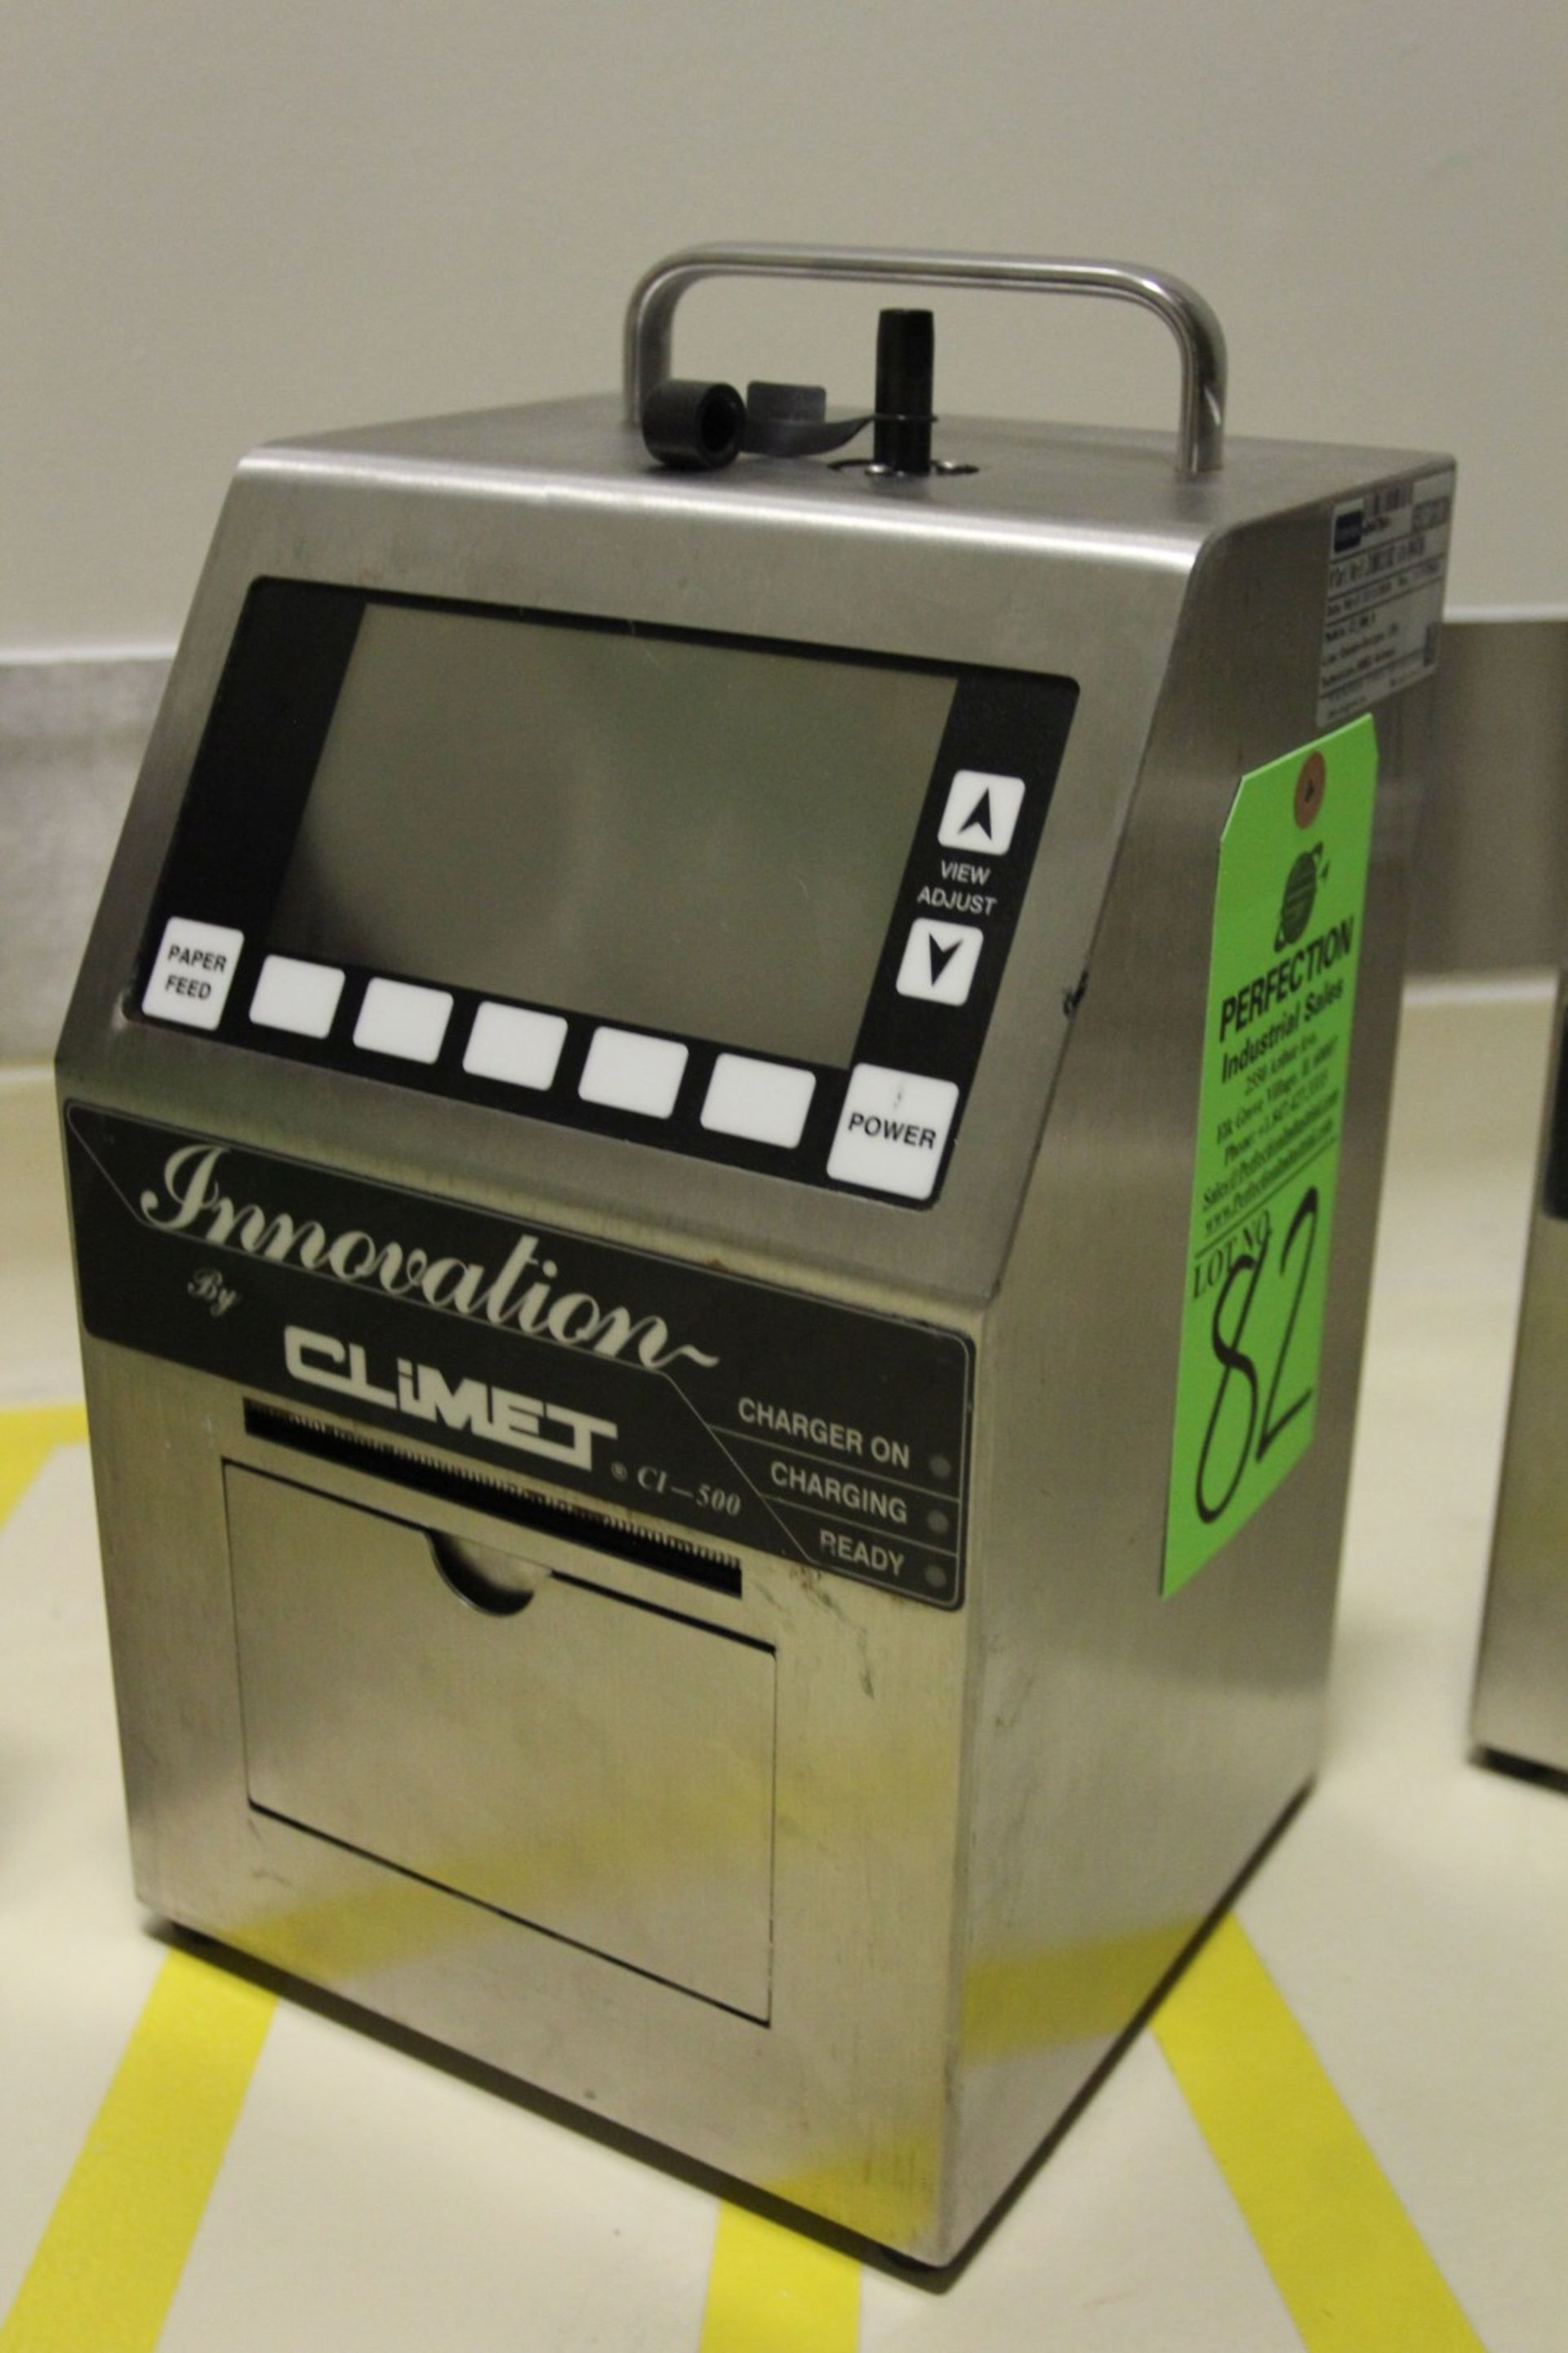 Lot 82 - 2010 Climet Innovation CI 500A Portable Laser Particle Counter, s/n 044784, Particle Sizes from .3mm